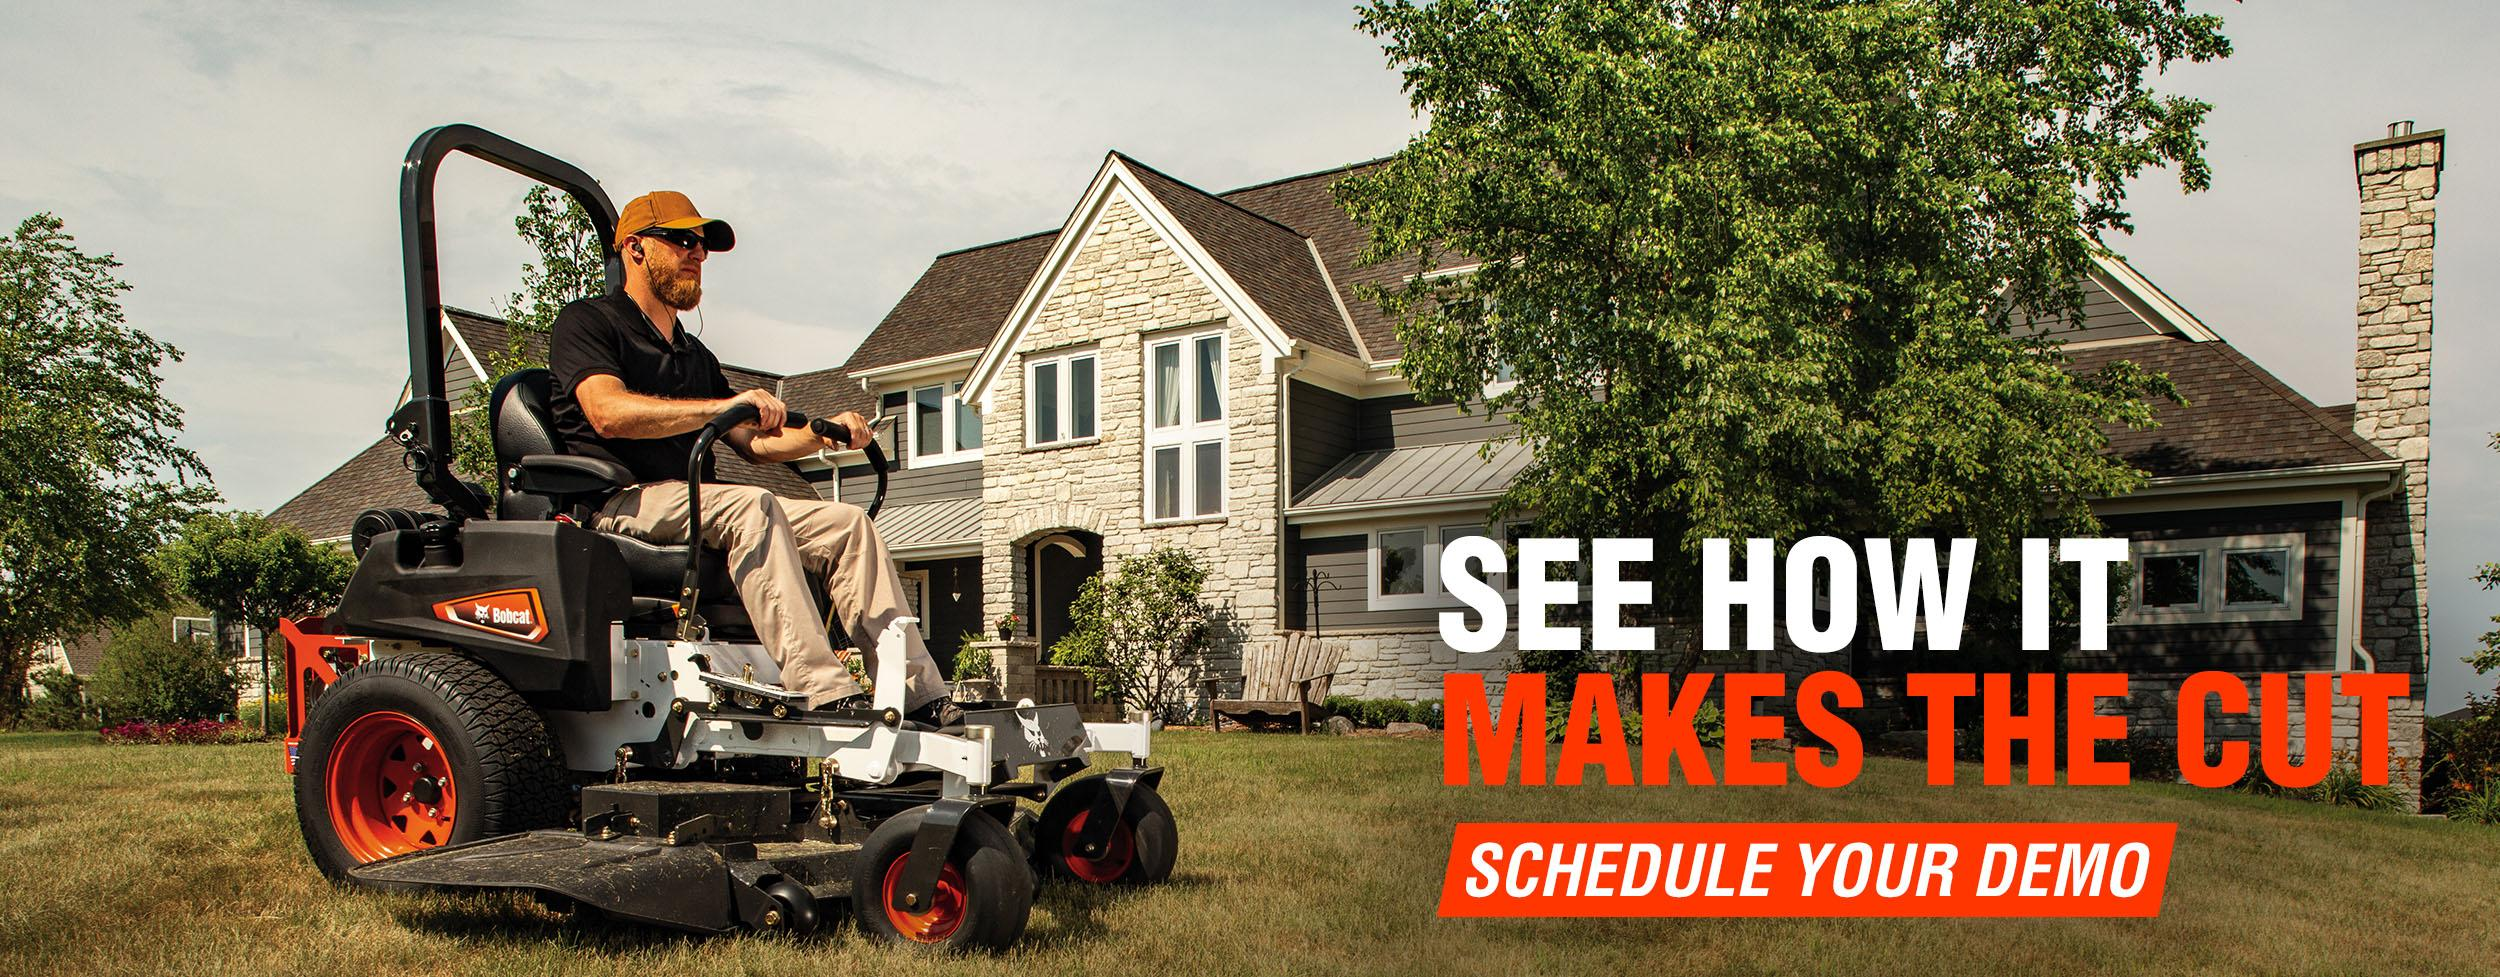 Demo Now Creative With Operator On A Bobcat Zero-Turn Mower Cutting Grass.